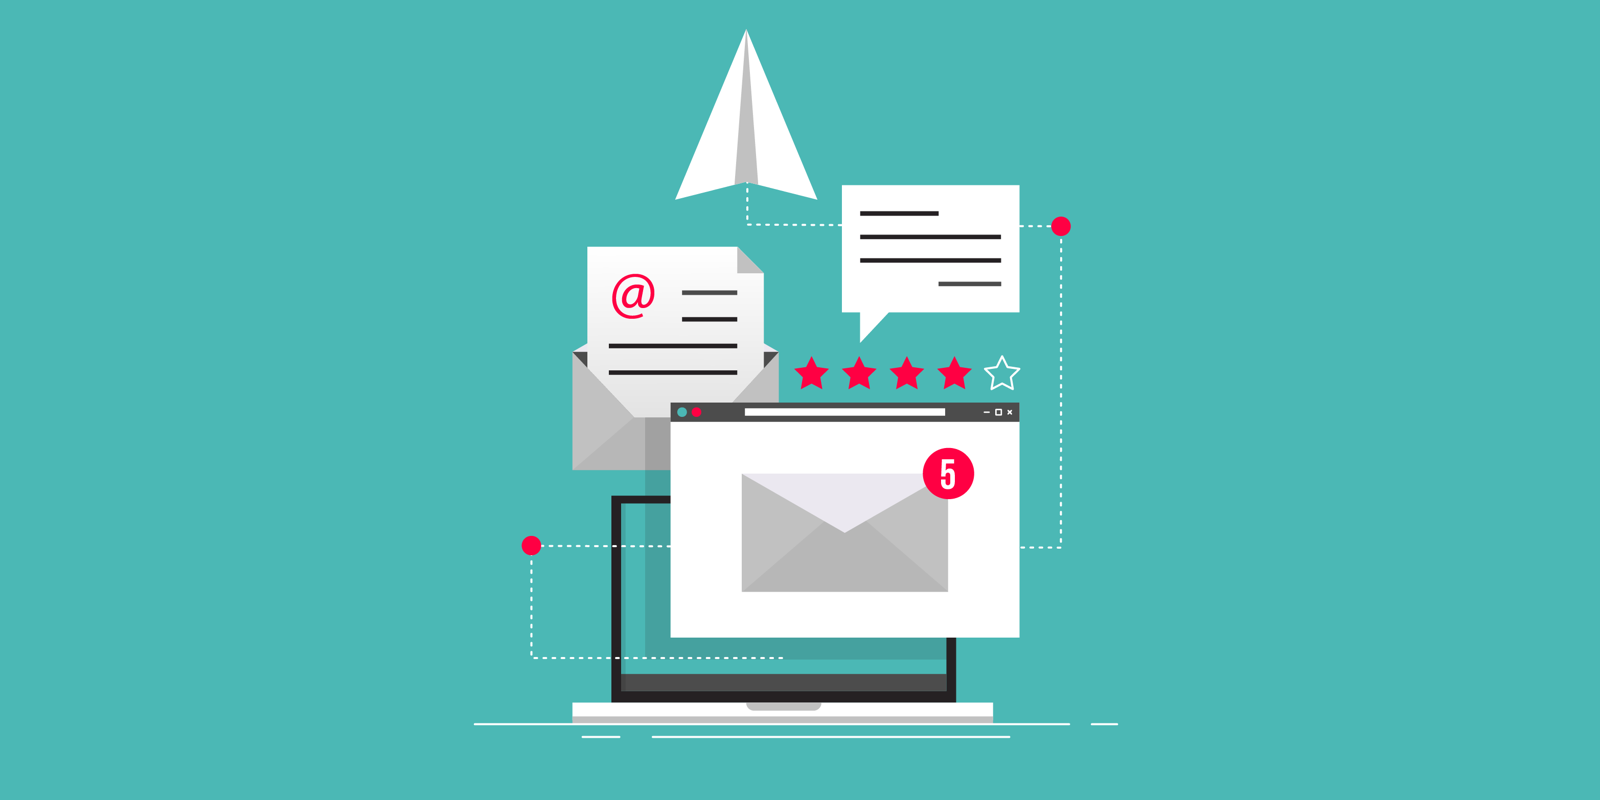 Digital Marketing 101 - Planning, creating and distributing an email campaign (part 3)